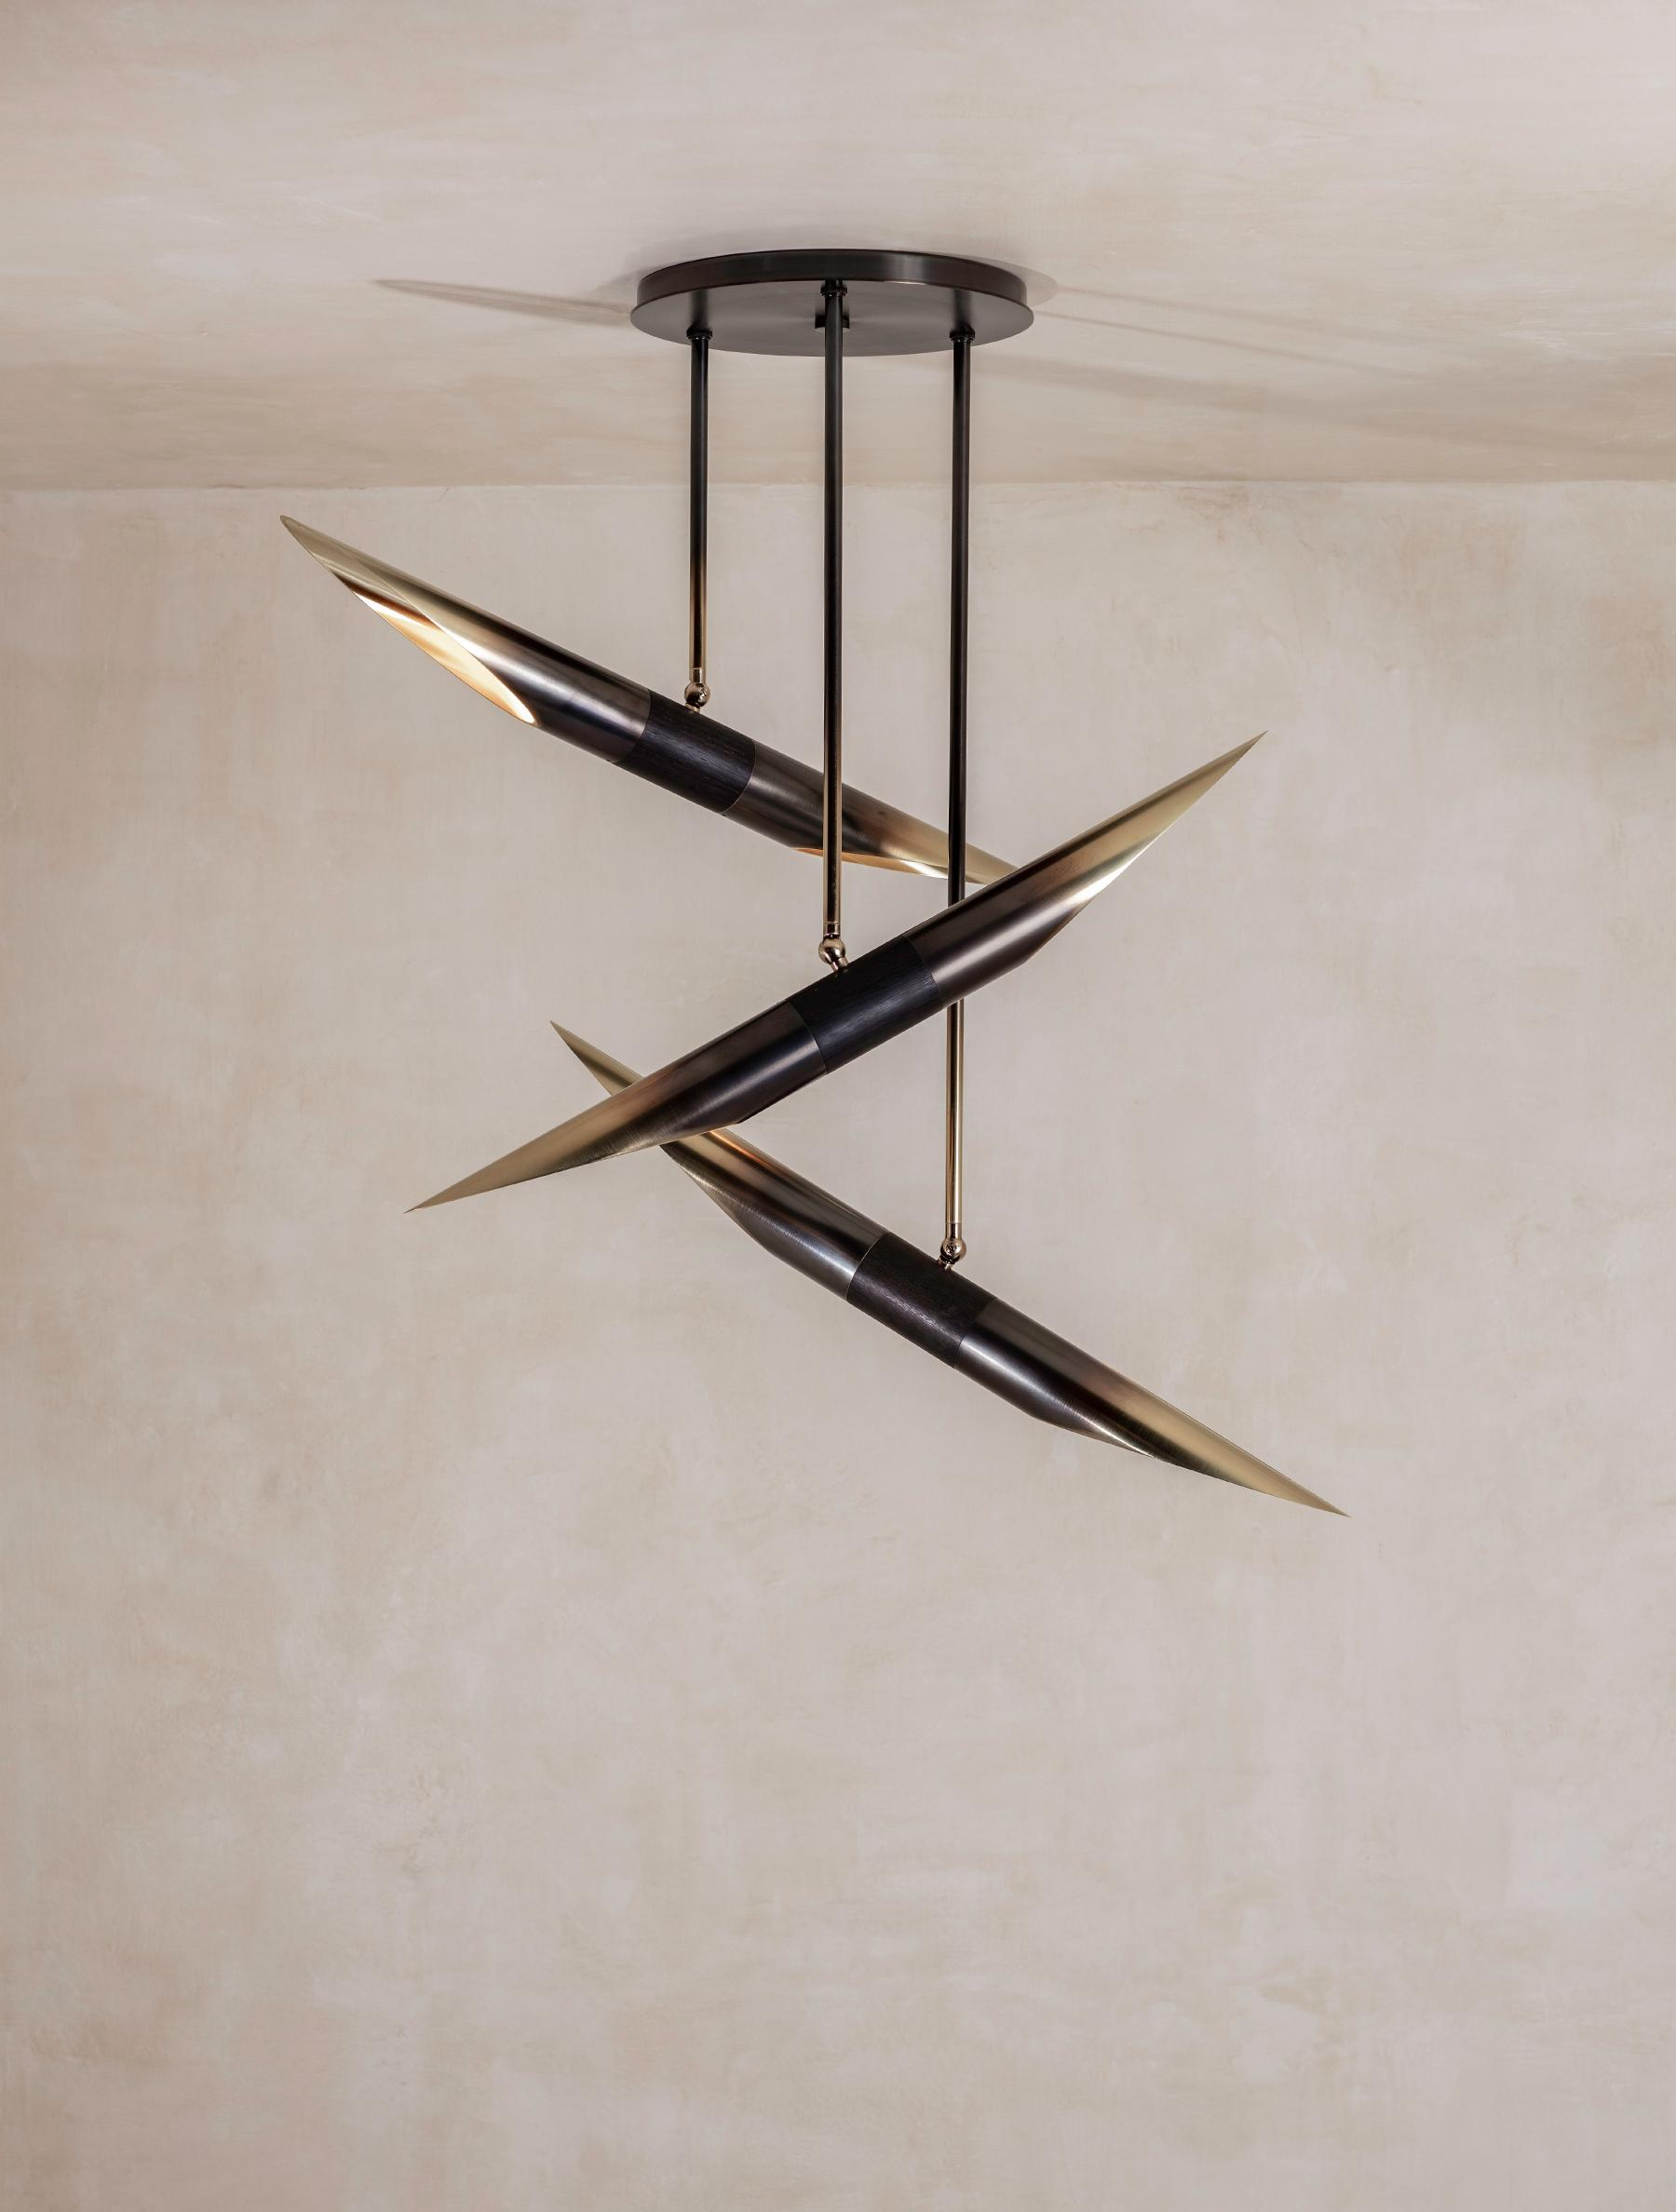 Voyager 333 Chandelier shown in Gradient, Oxidized Oak